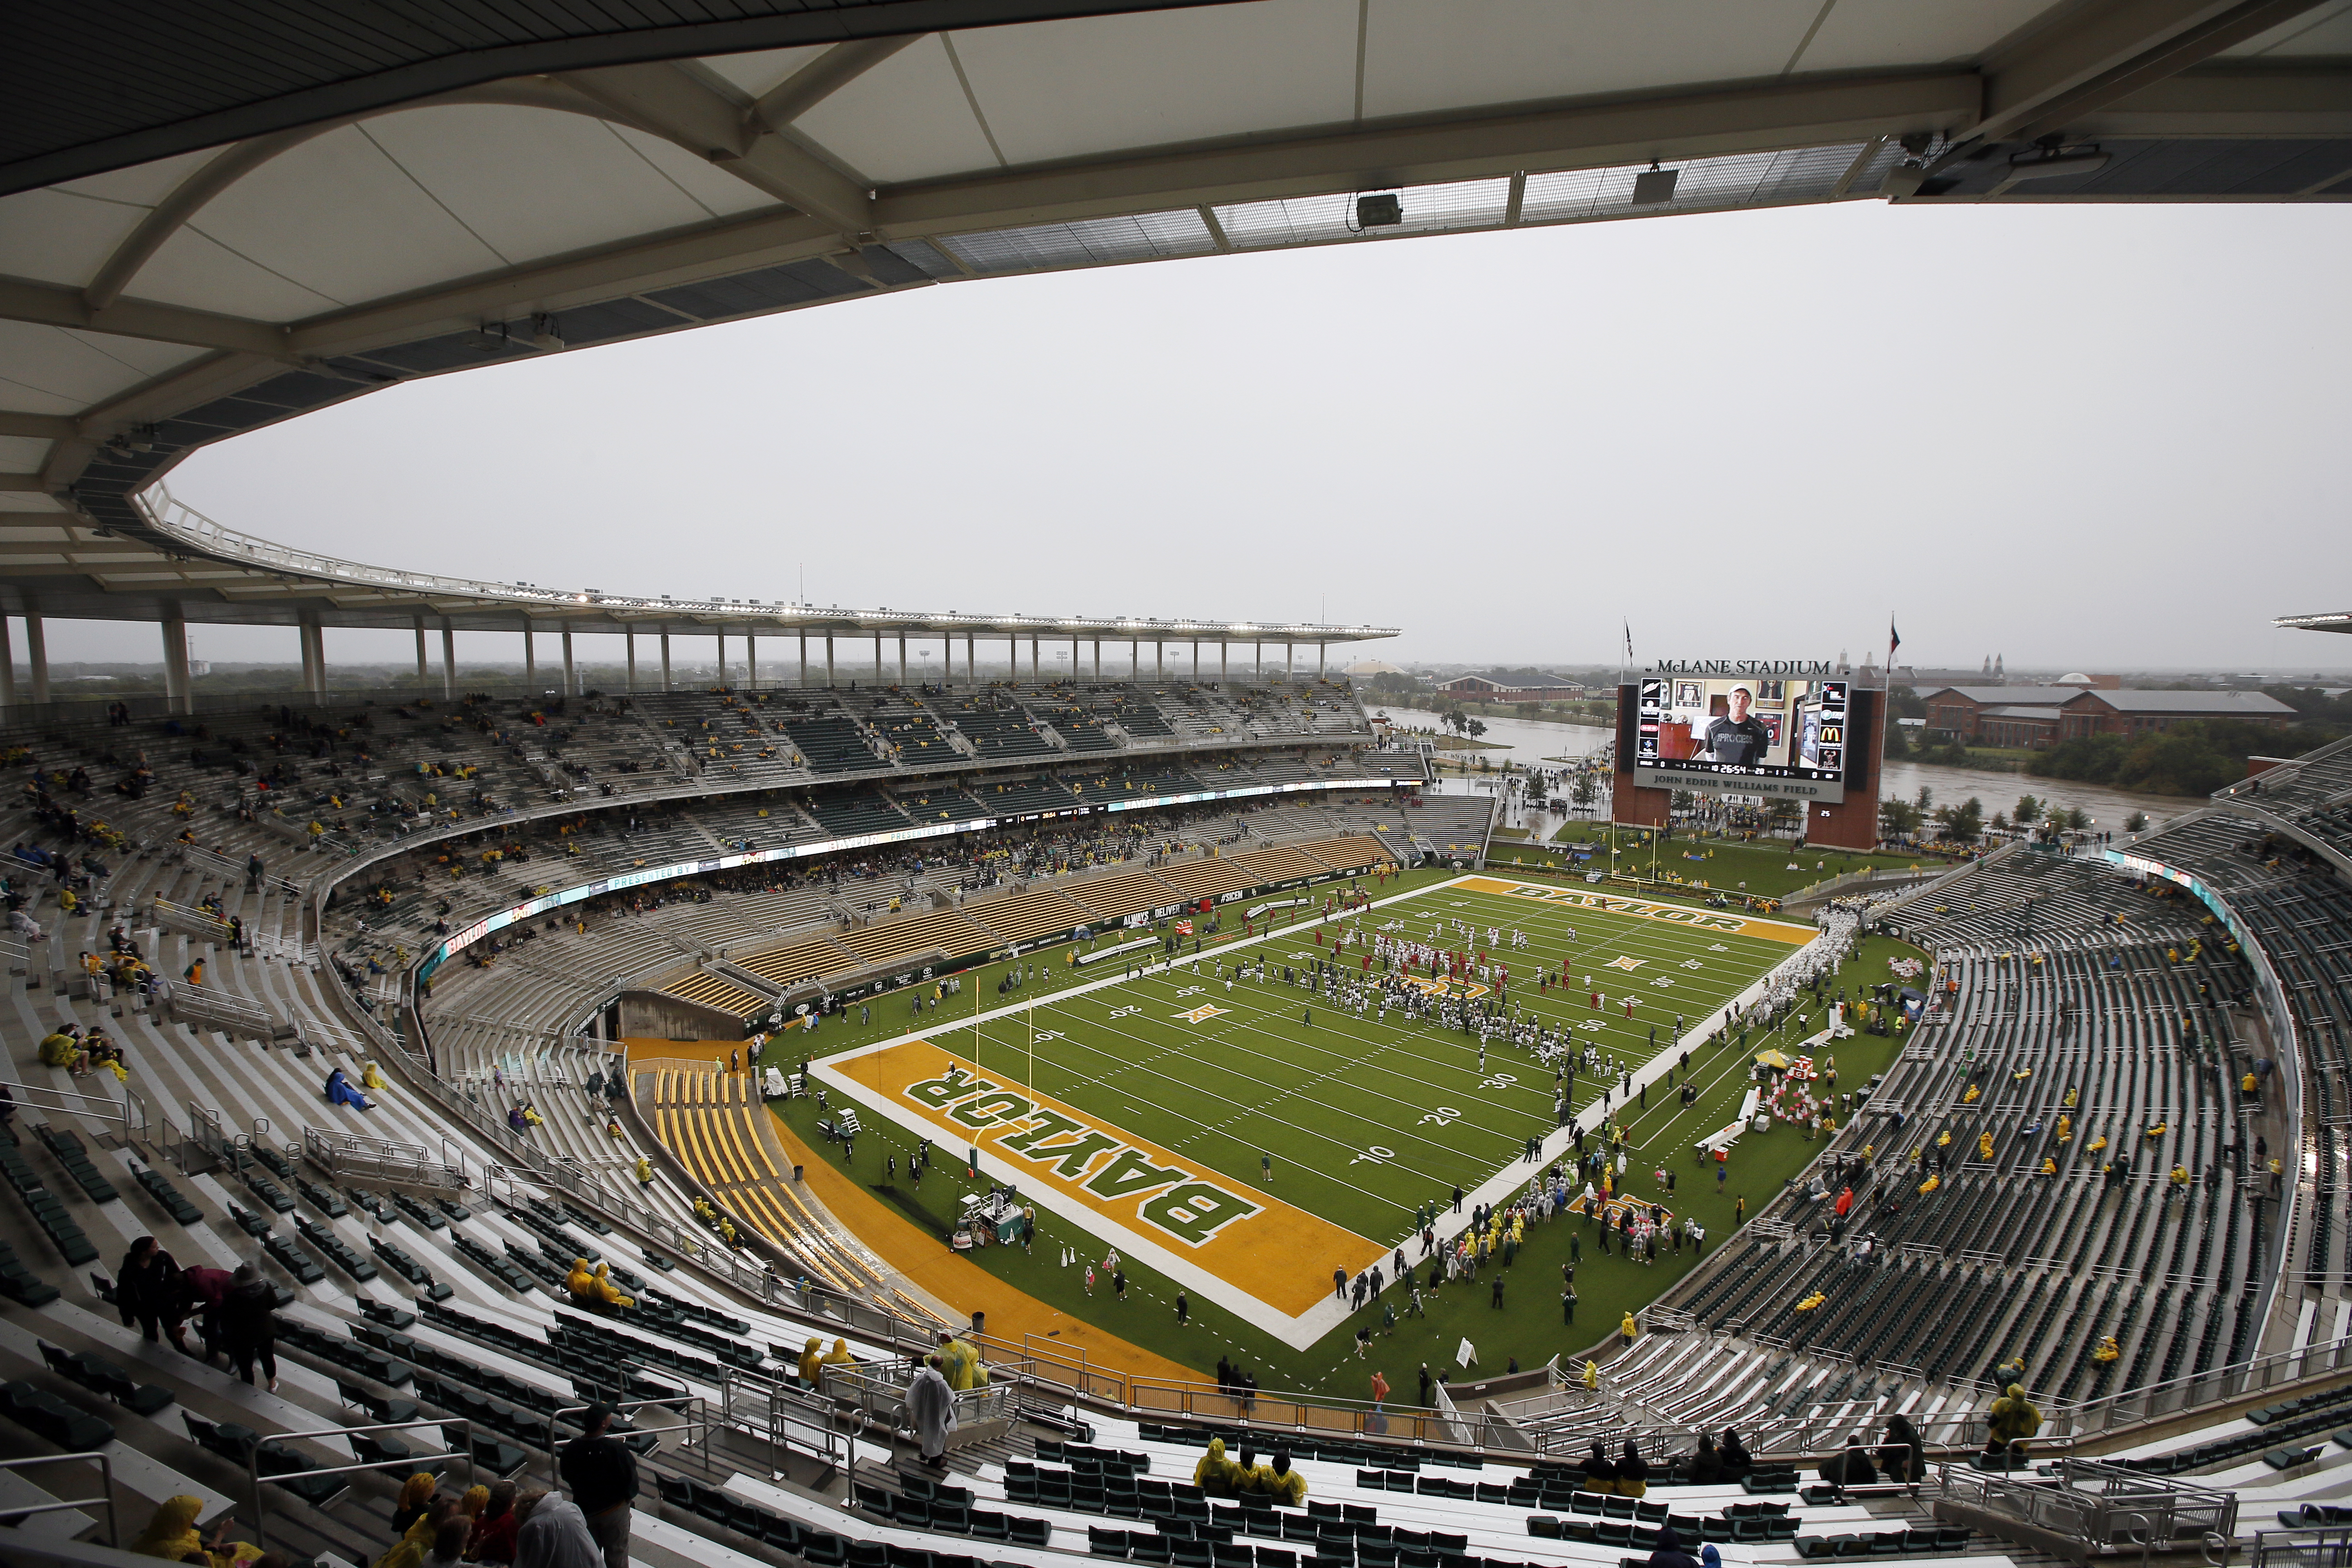 FILE - In this Oct. 24, 2015, file photo, a nearly empty McLane Stadium is seen minutes before kickoff between Iowa State and Baylor in an NCAA college football game, in Waco, Texas. Baylor University will look to rebuild its reputation and perhaps its fo